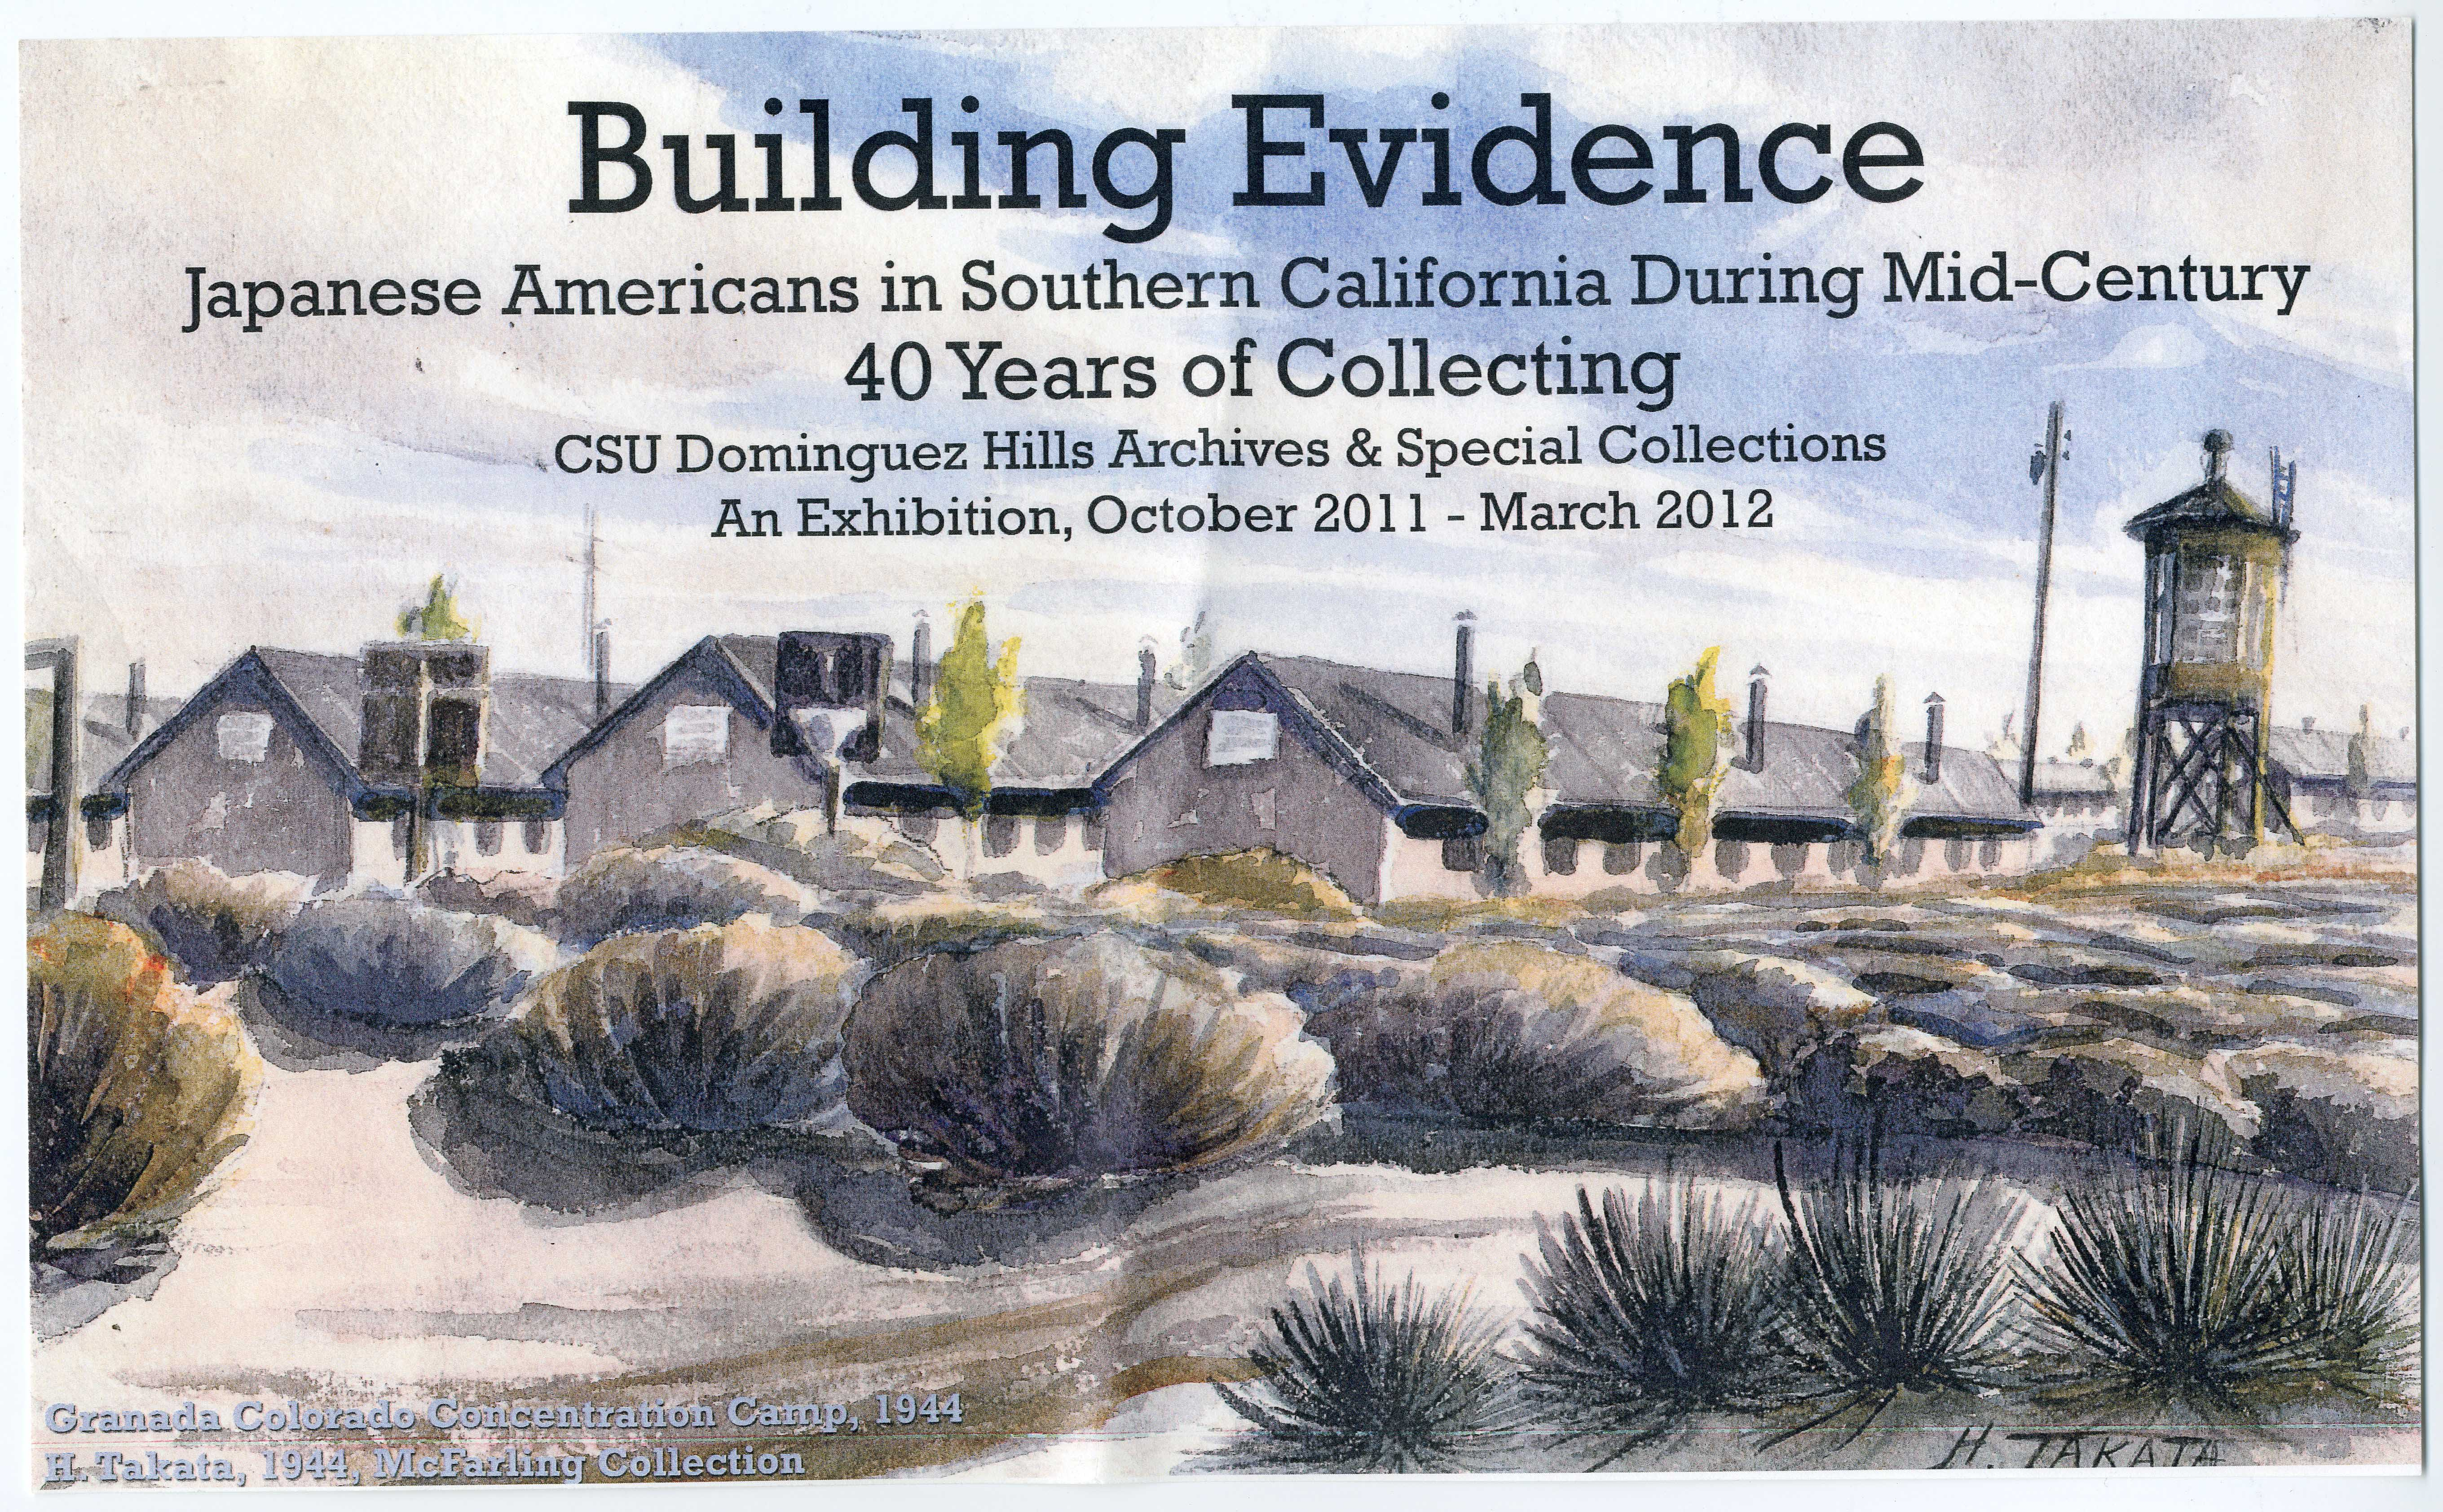 Building Evidence Japanese American Exhibit flyer